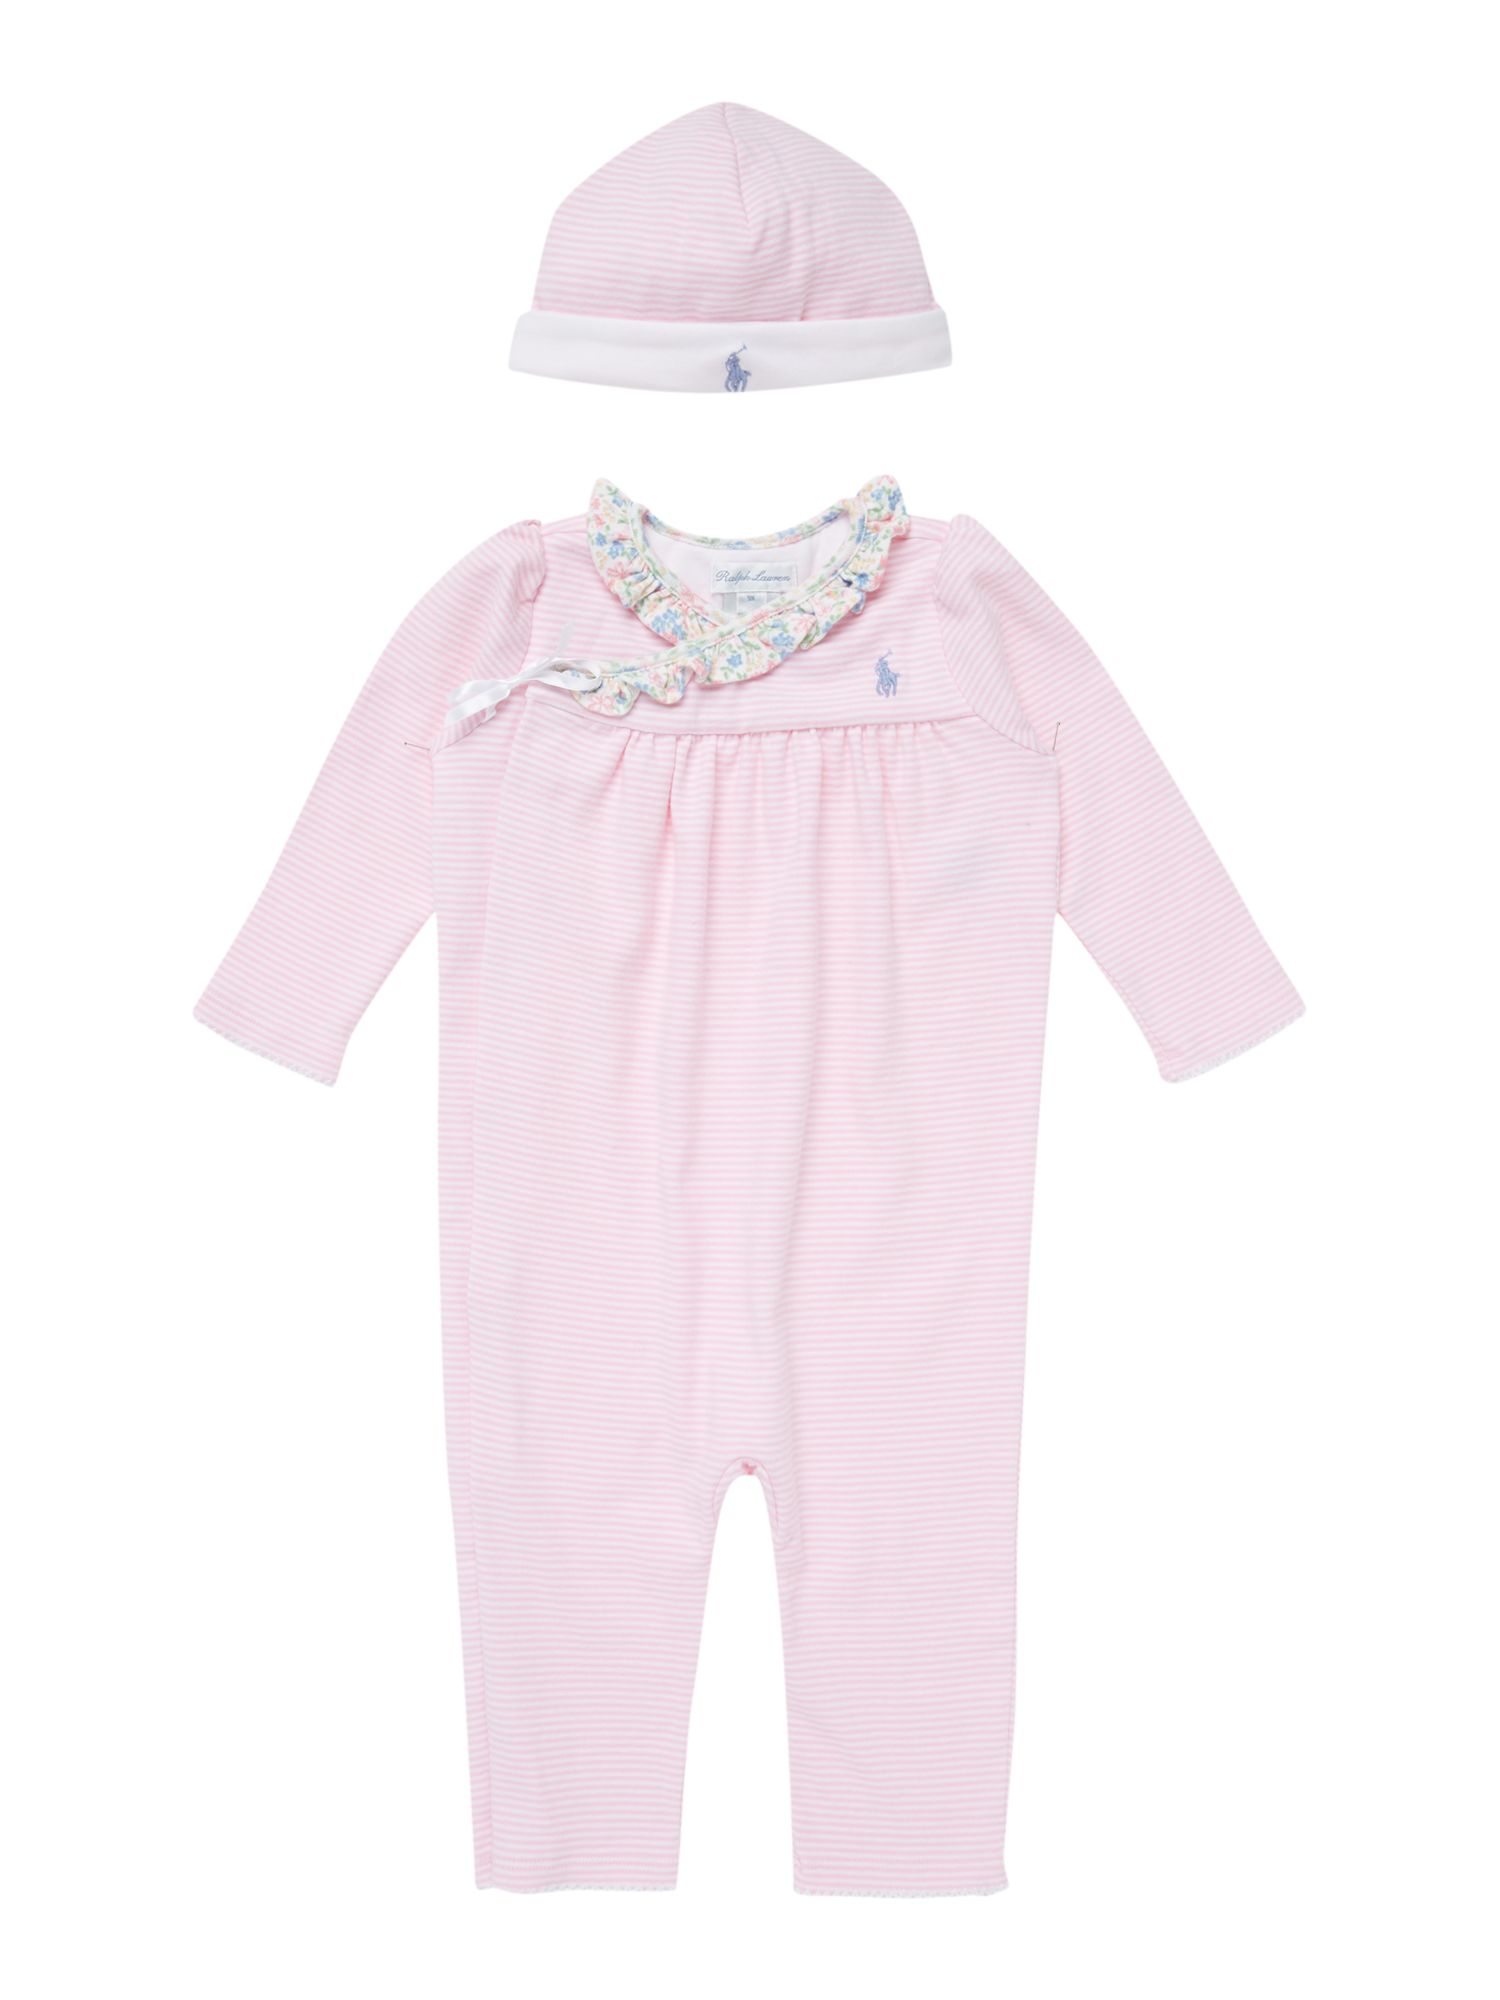 Baby girls all-in-one with teddy & hat giftbox